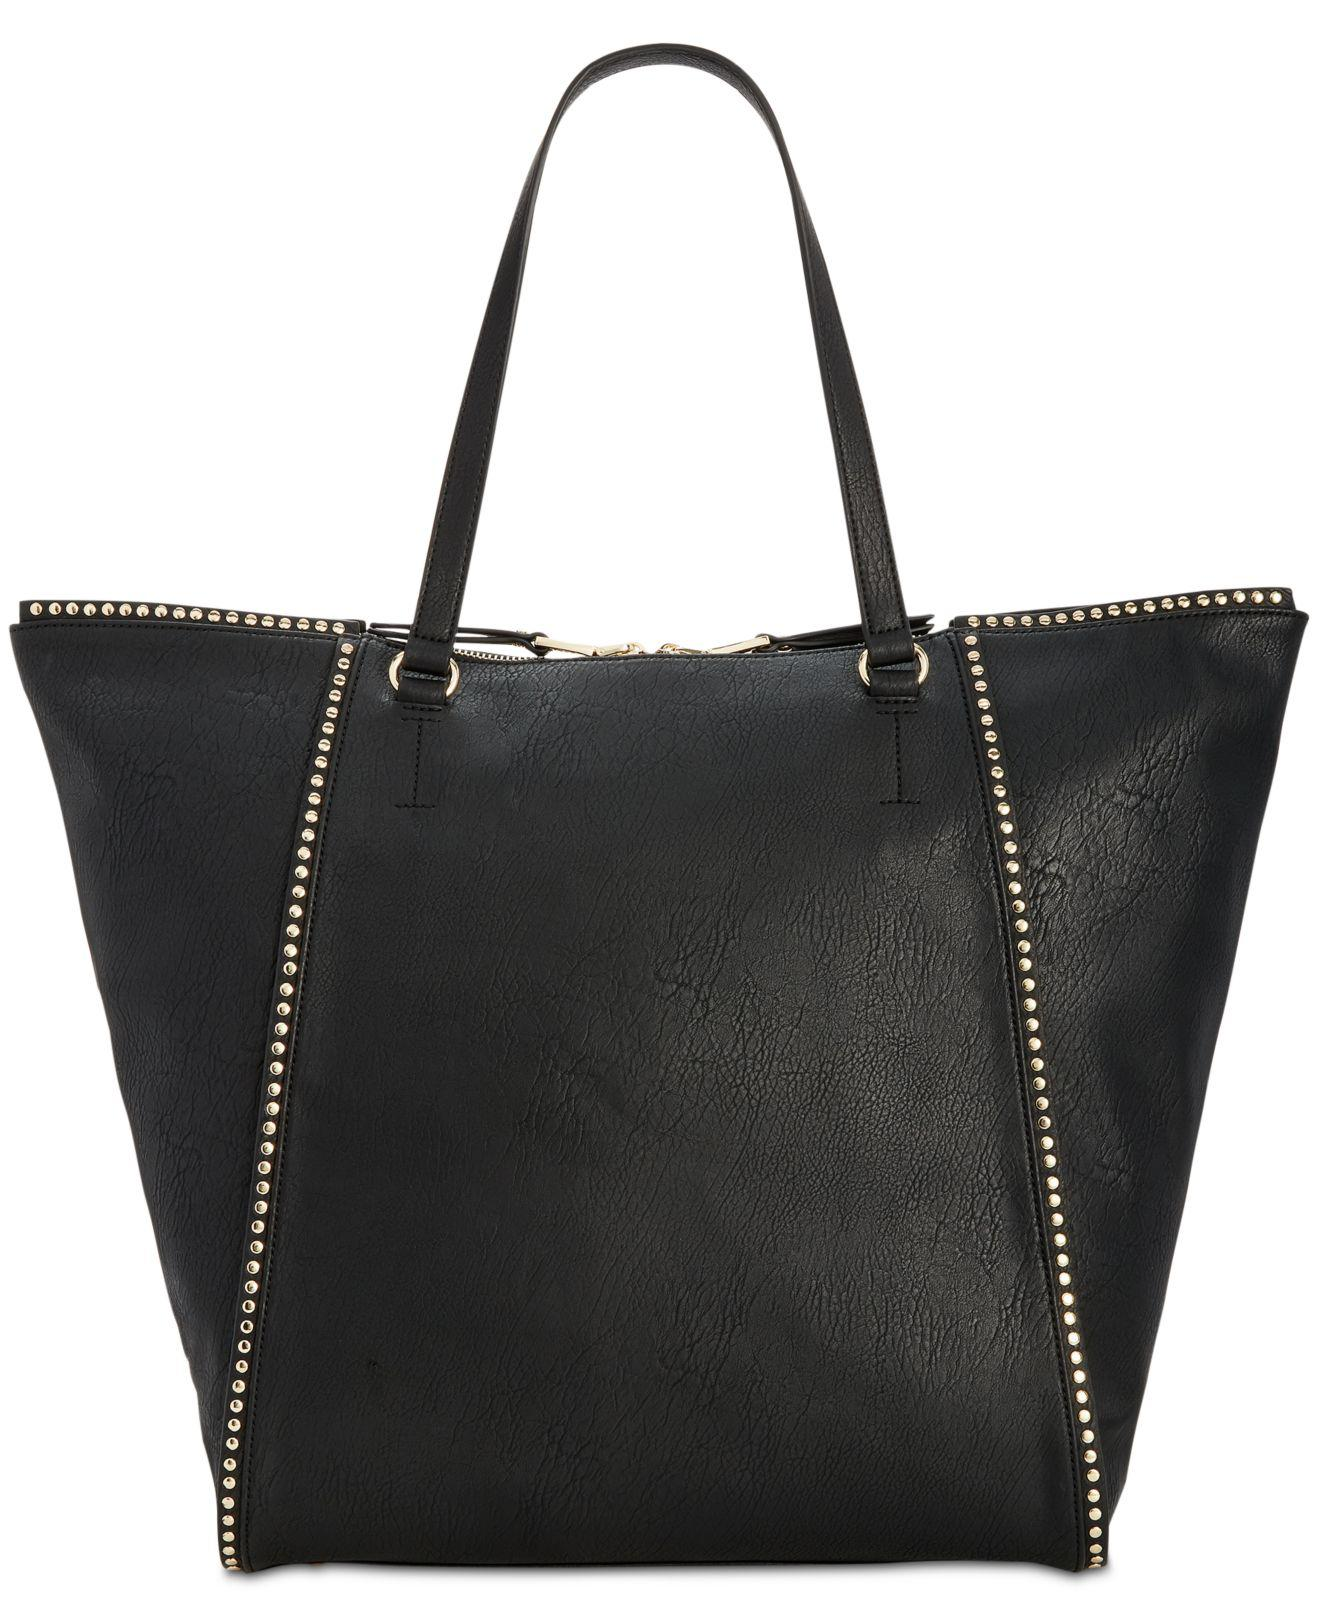 1360abe6364f INC International Concepts Hazell Studded Large Tote in Black - Lyst